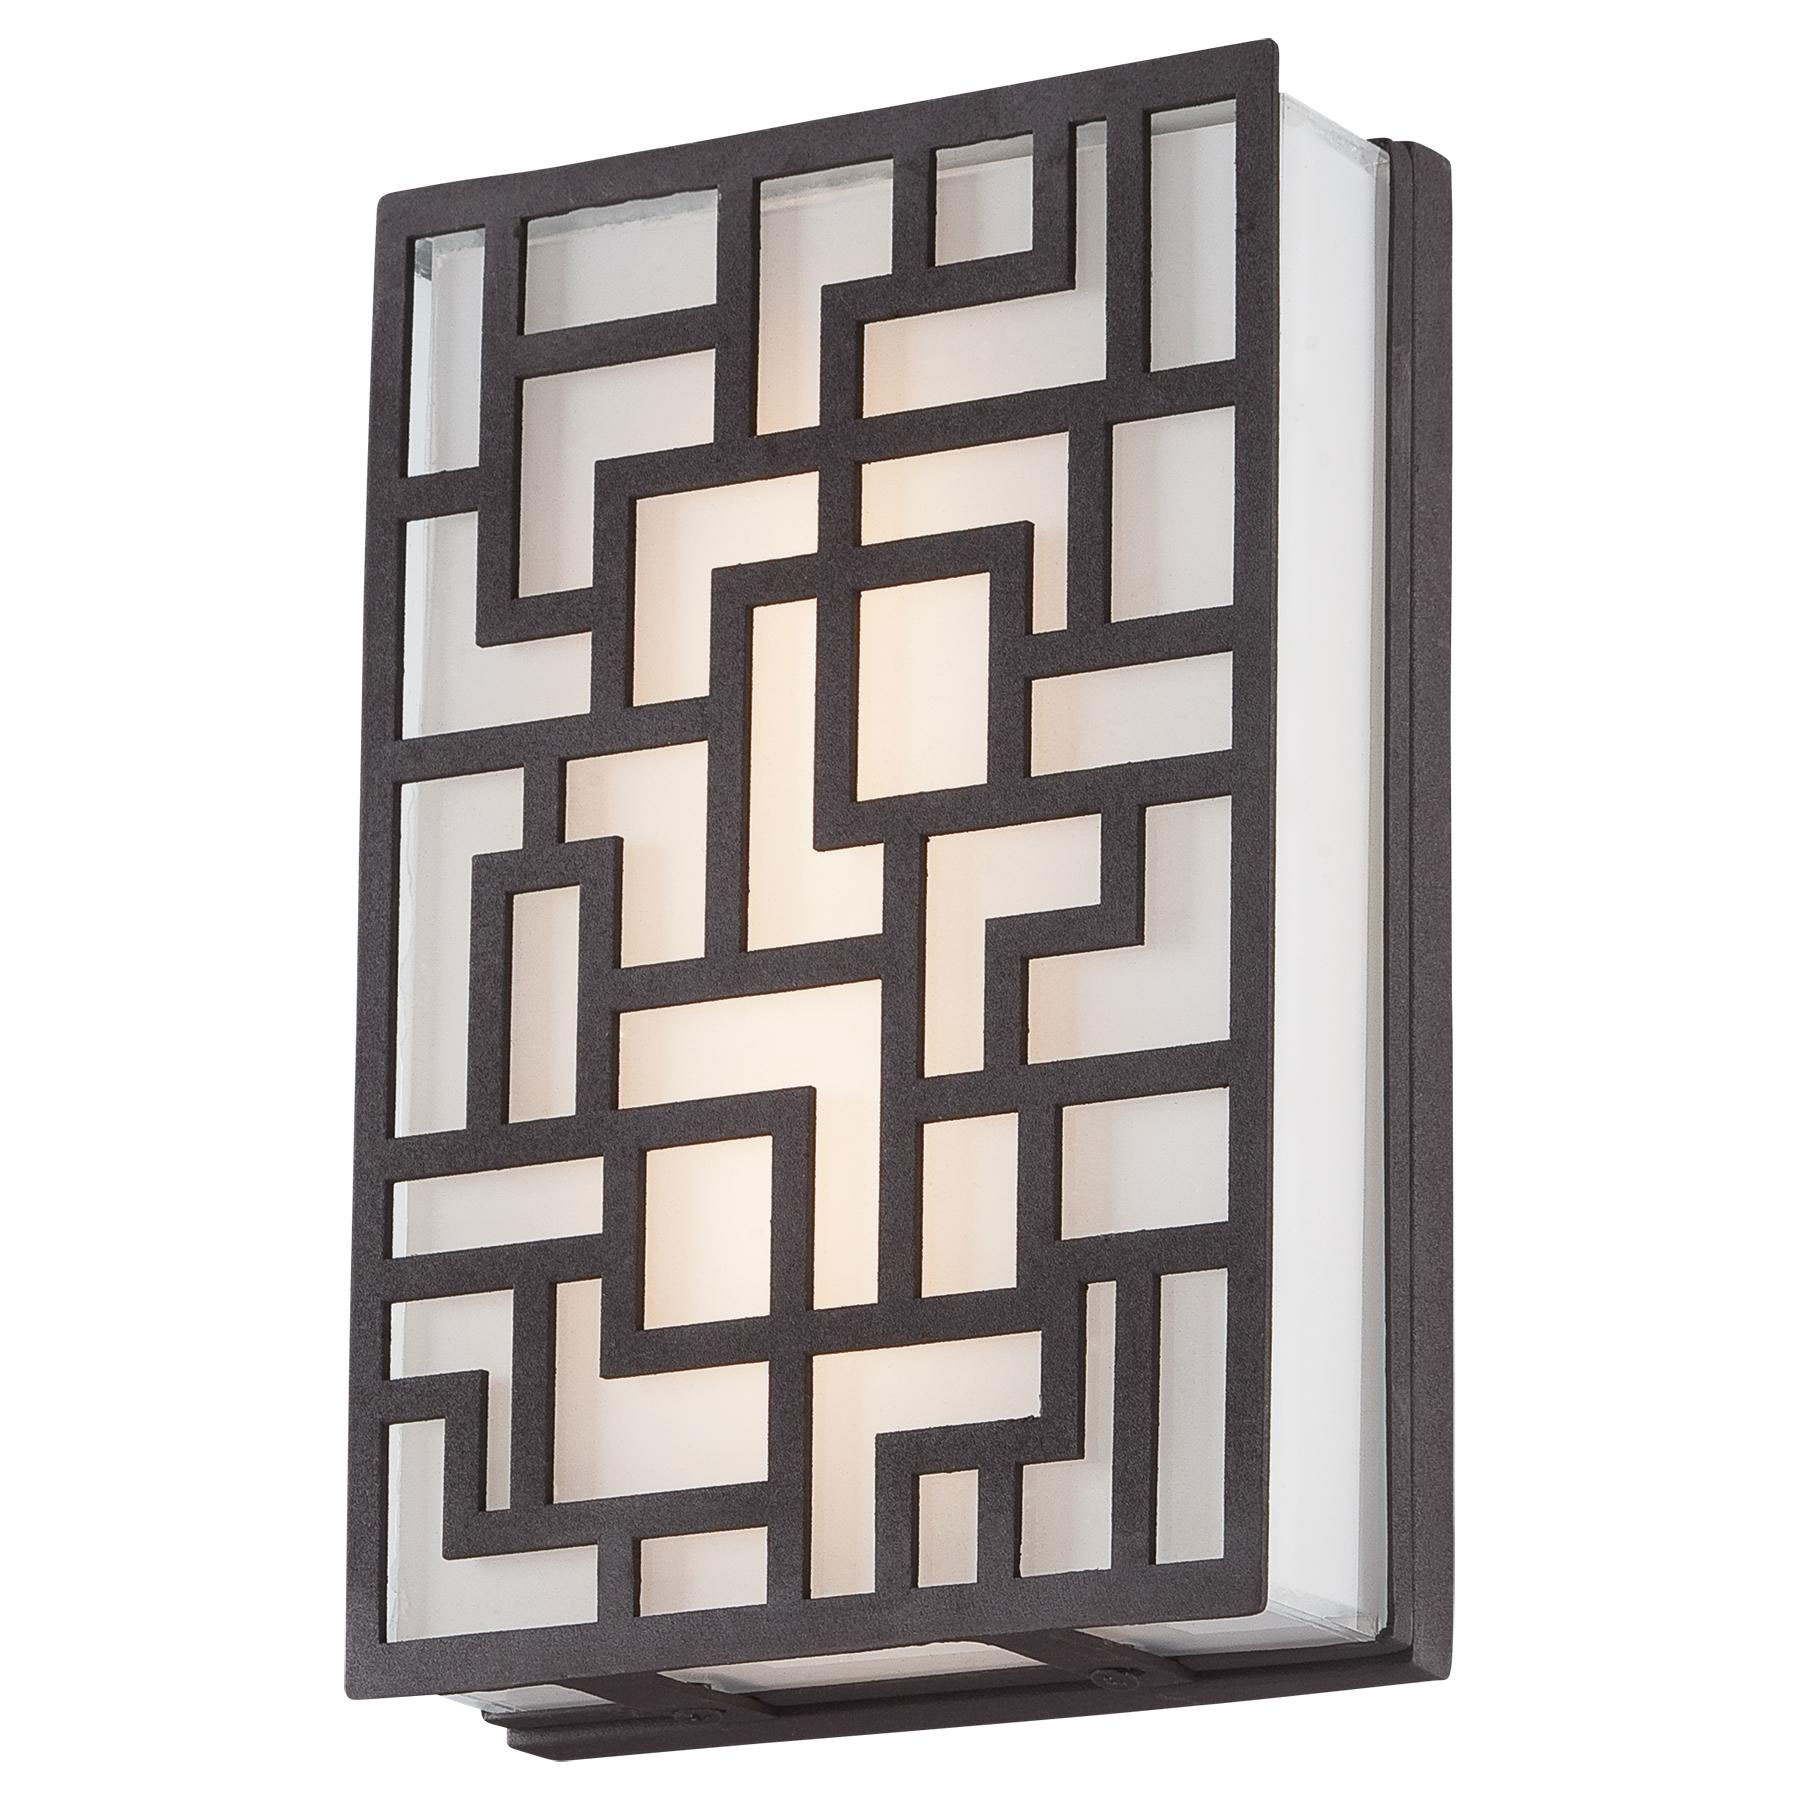 Aleciau0027s Necklace Outdoor LED Wall Sconce By George Kovacs | P1221 287 L